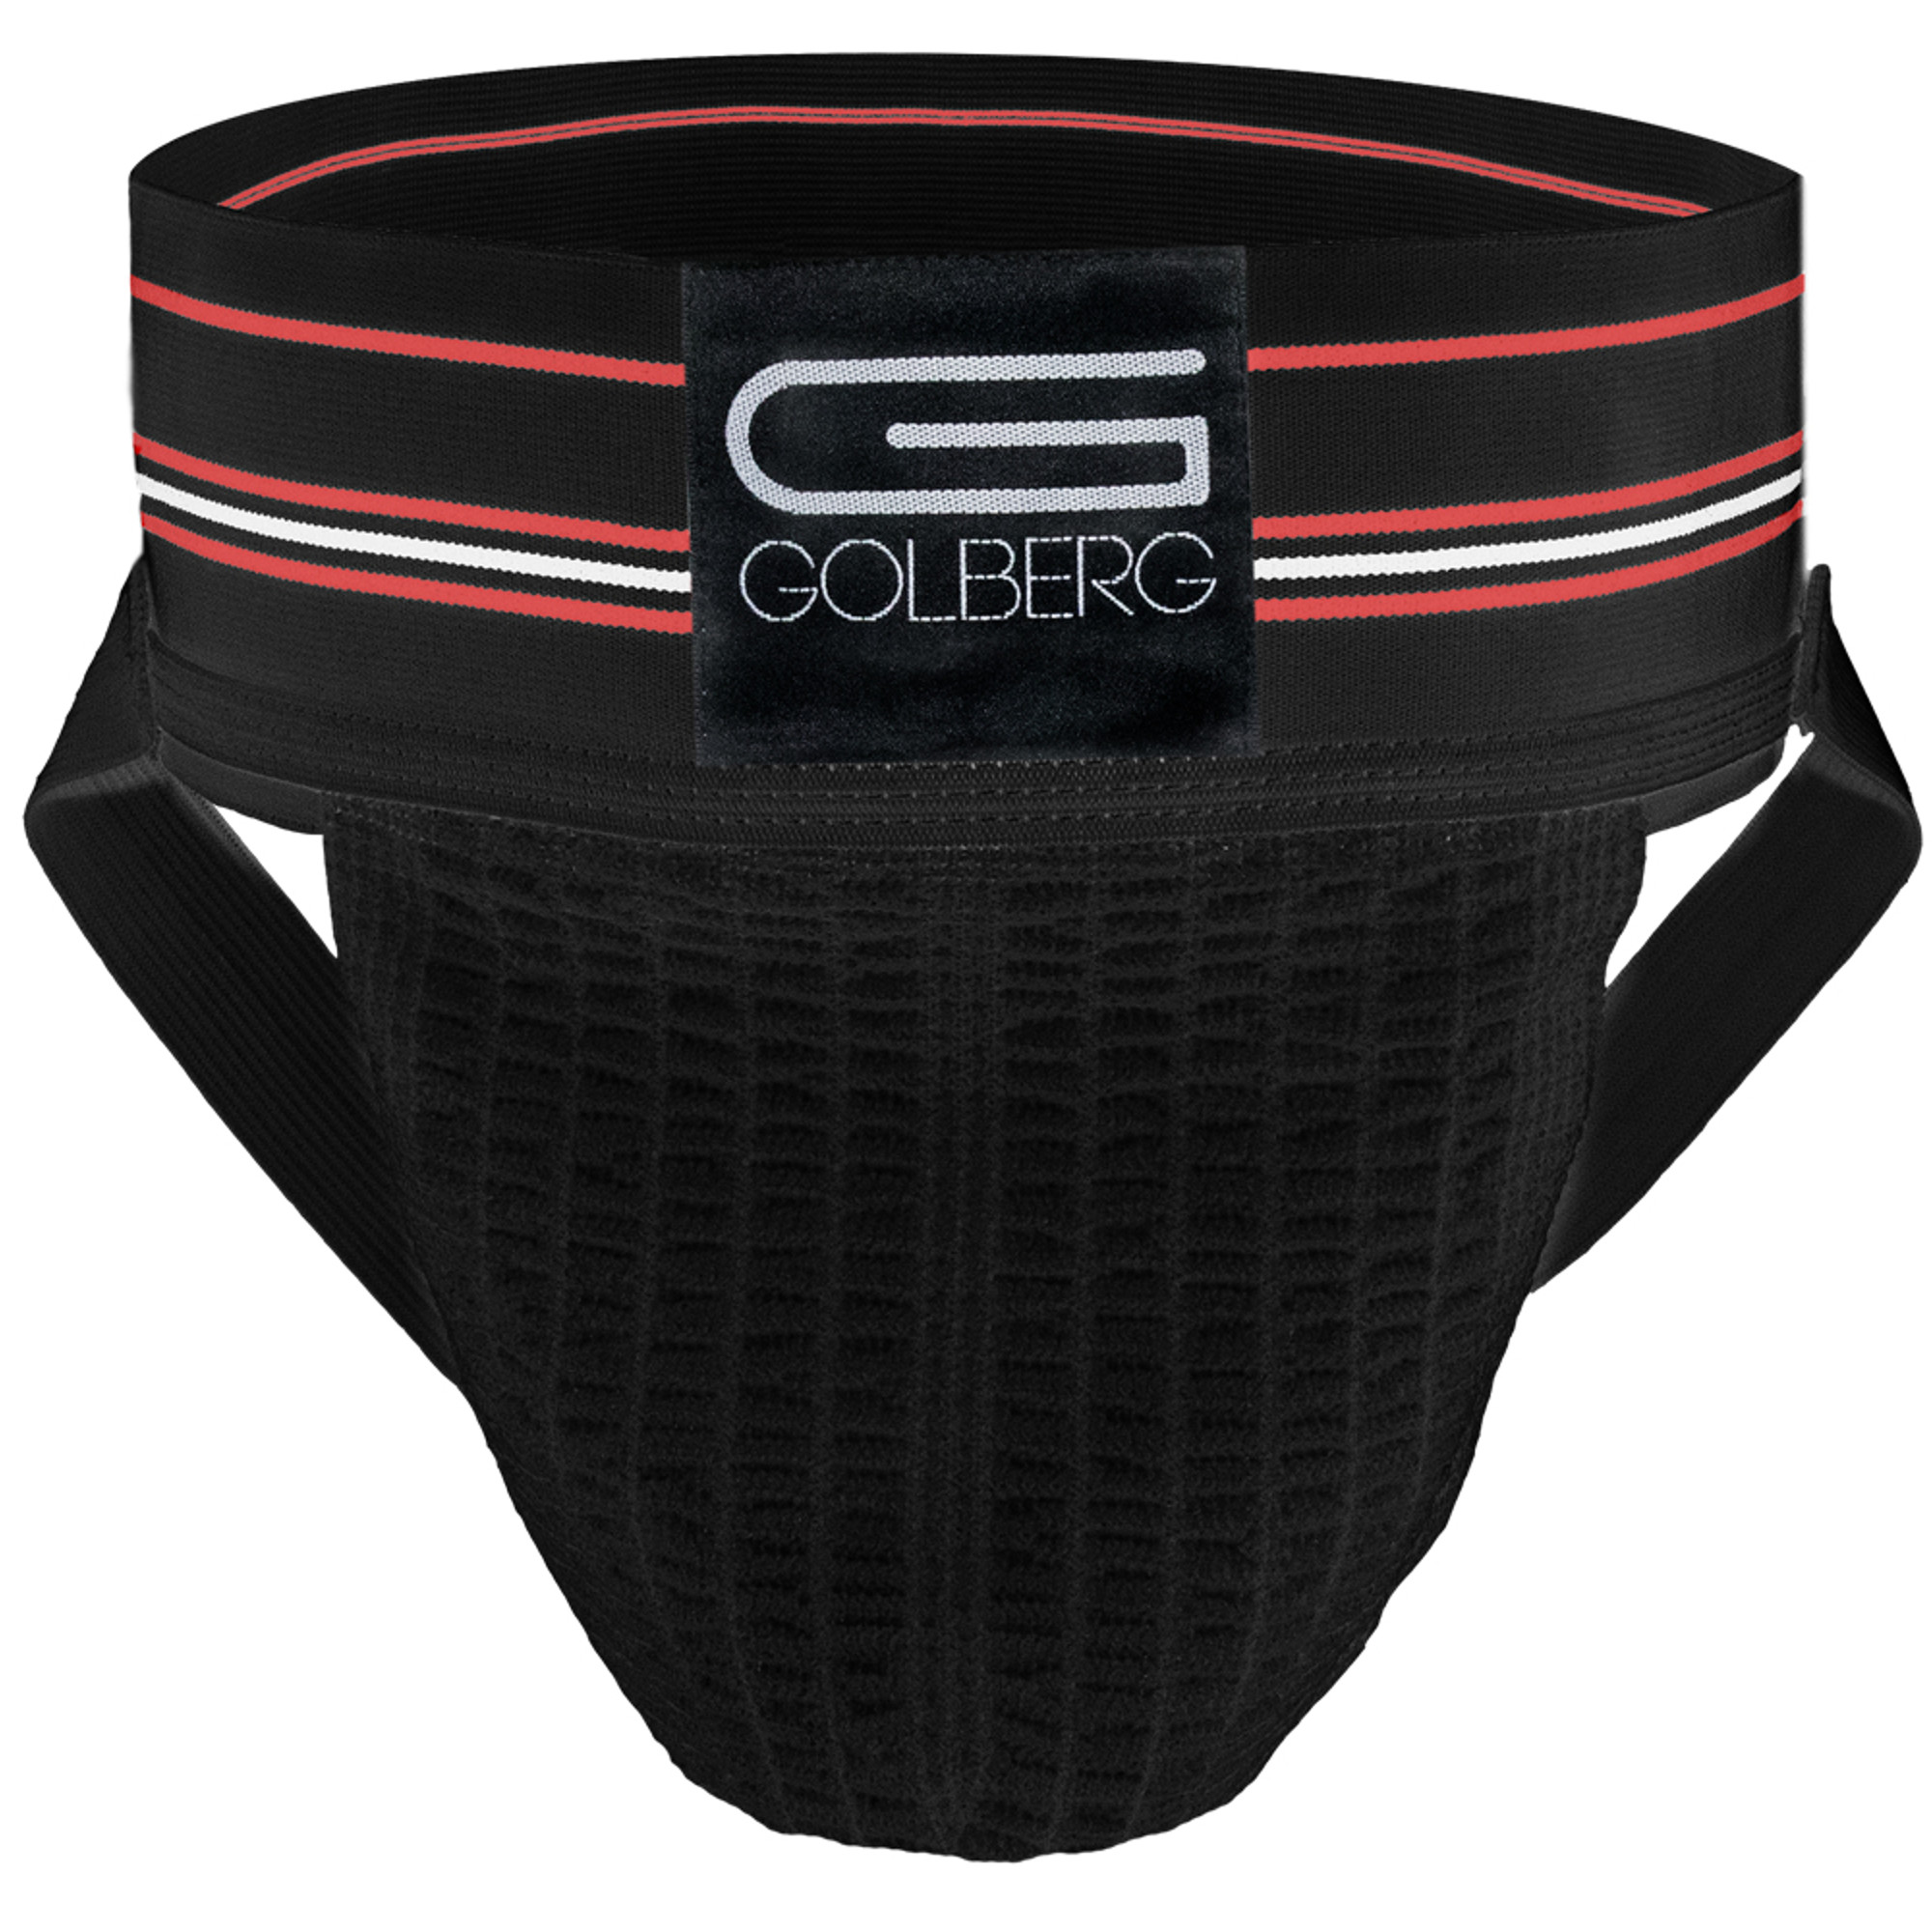 GOLBERG Athletic Supporter (2 Pack)